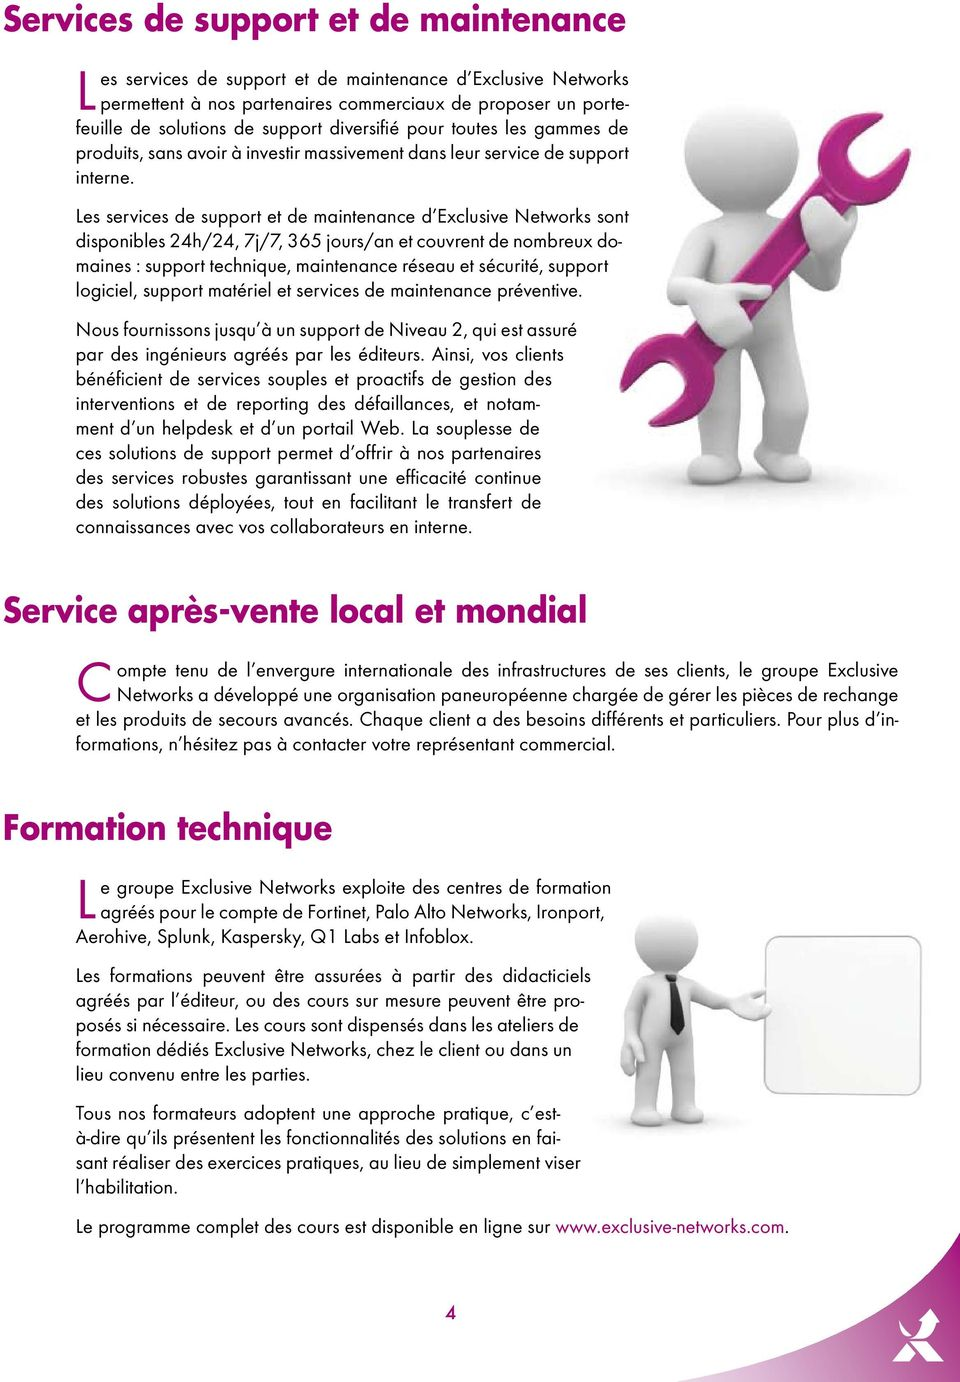 Les services de support et de maintenance d Exclusive Networks sont disponibles 24h/24, 7j/7, 365 jours/an et couvrent de nombreux domaines : support technique, maintenance réseau et sécurité,